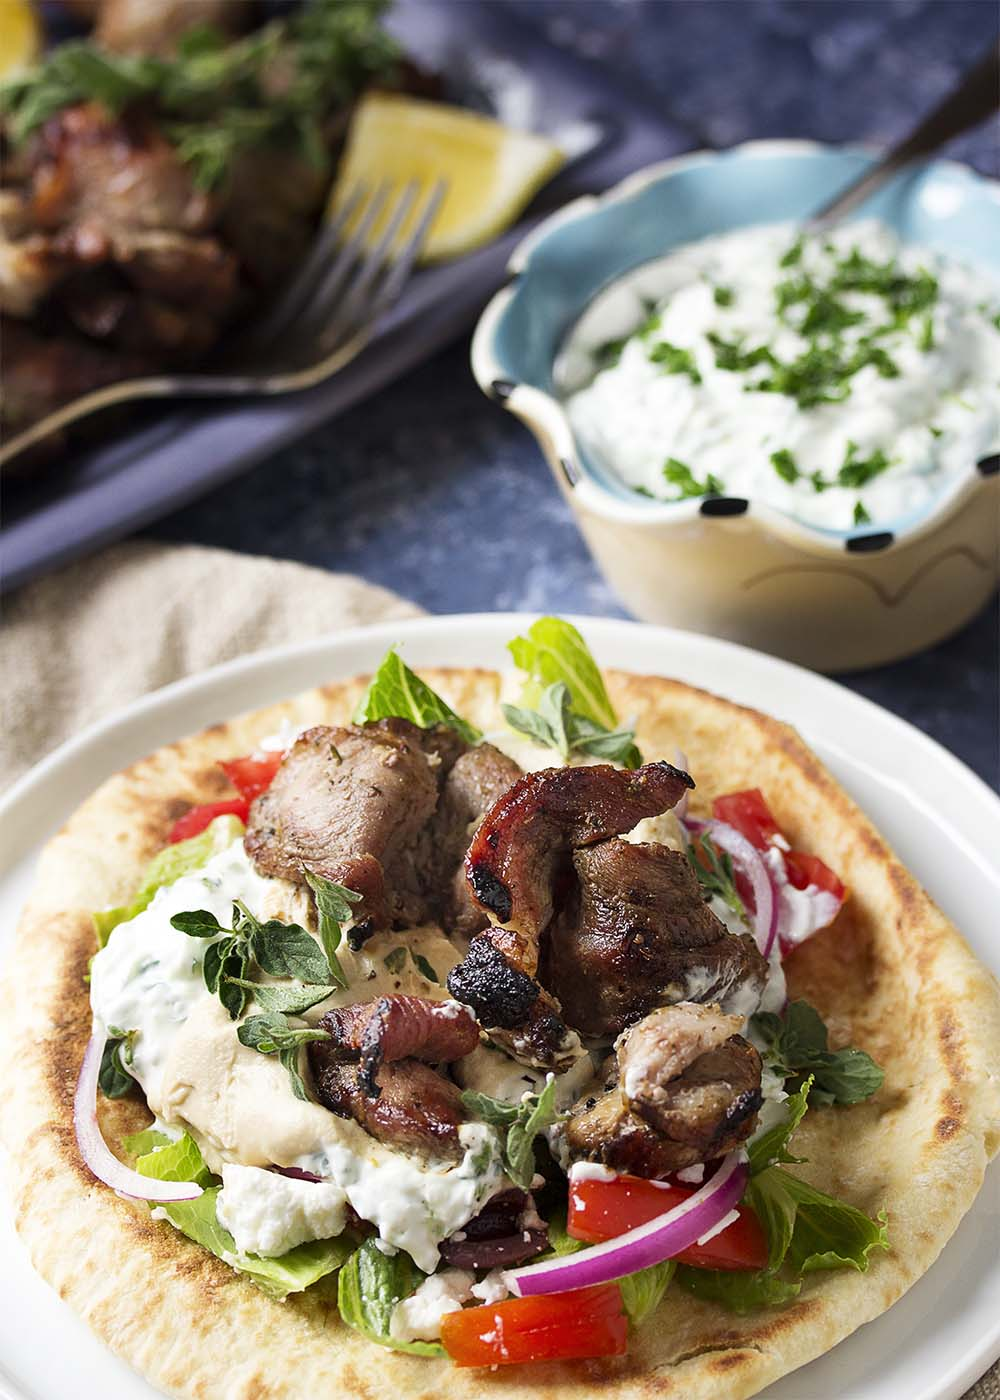 Grilled pork souvlaki on a pita with tzatziki sauce, hummus, lettuce, and tomatoes to make a gyro sandwich.